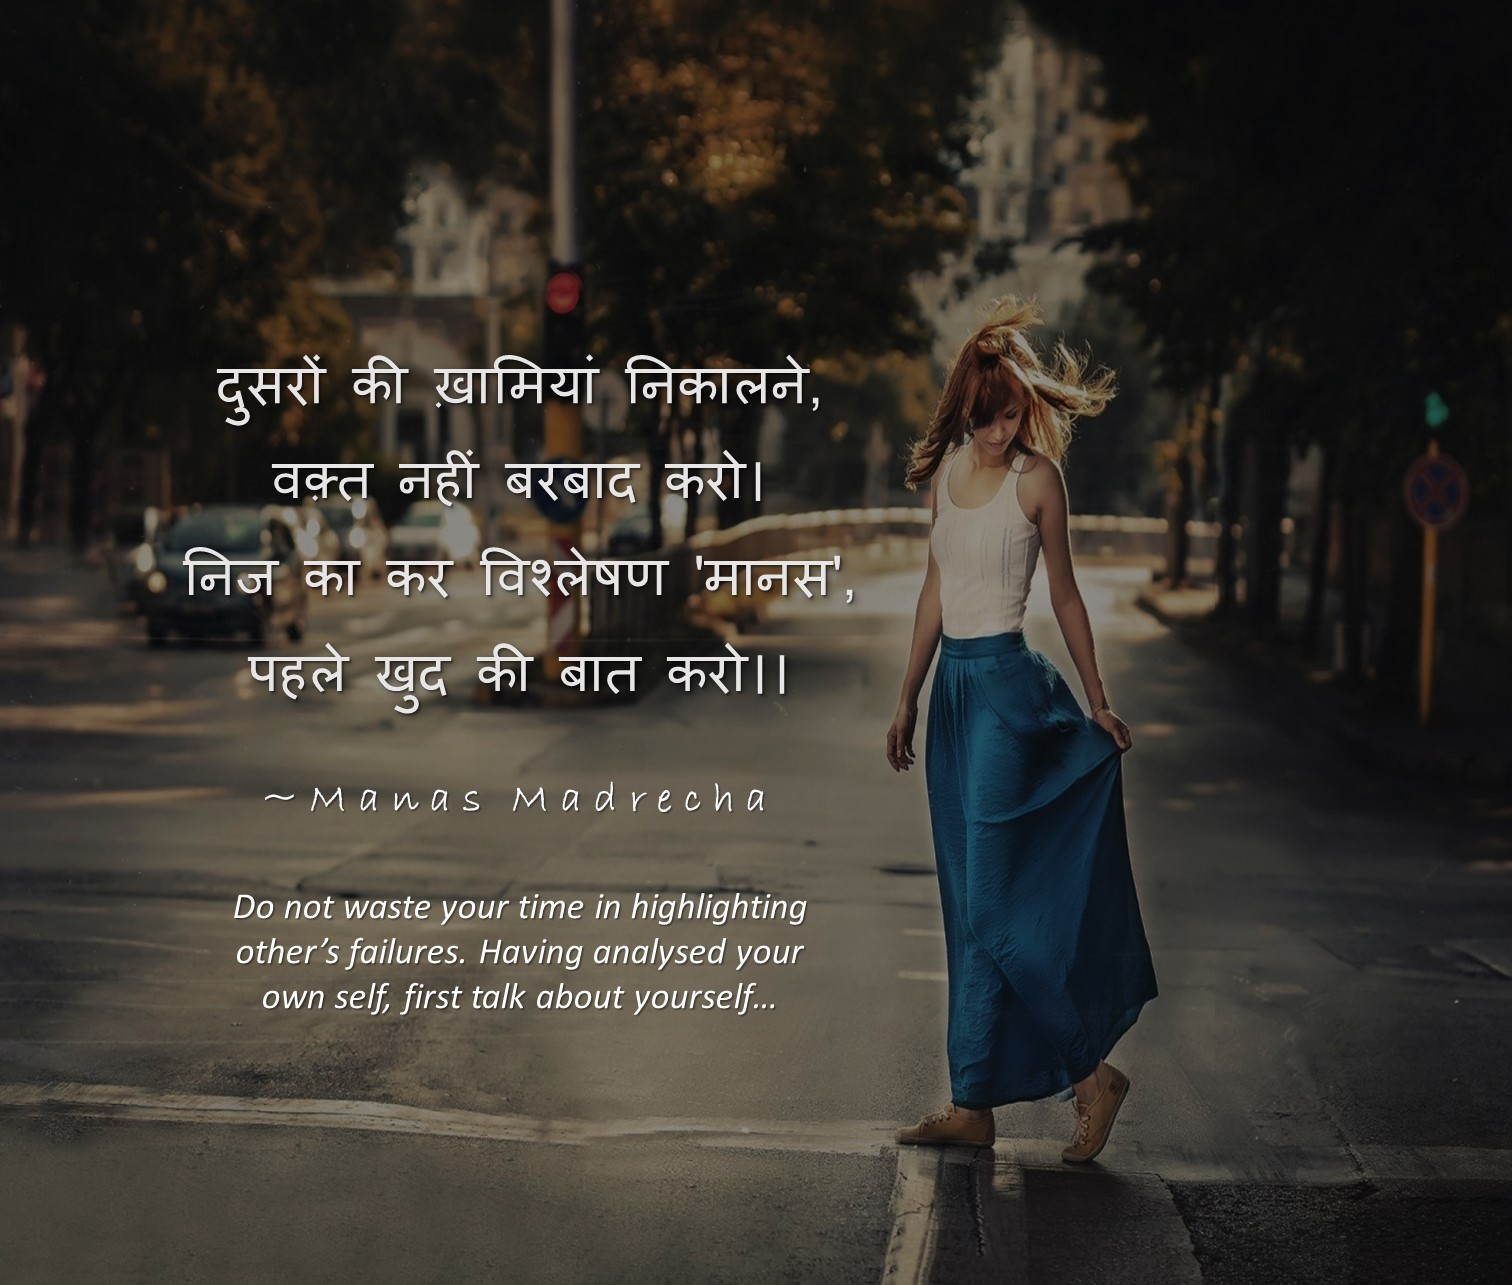 First Talk About Your Self Hindi Poem Manas Madrecha